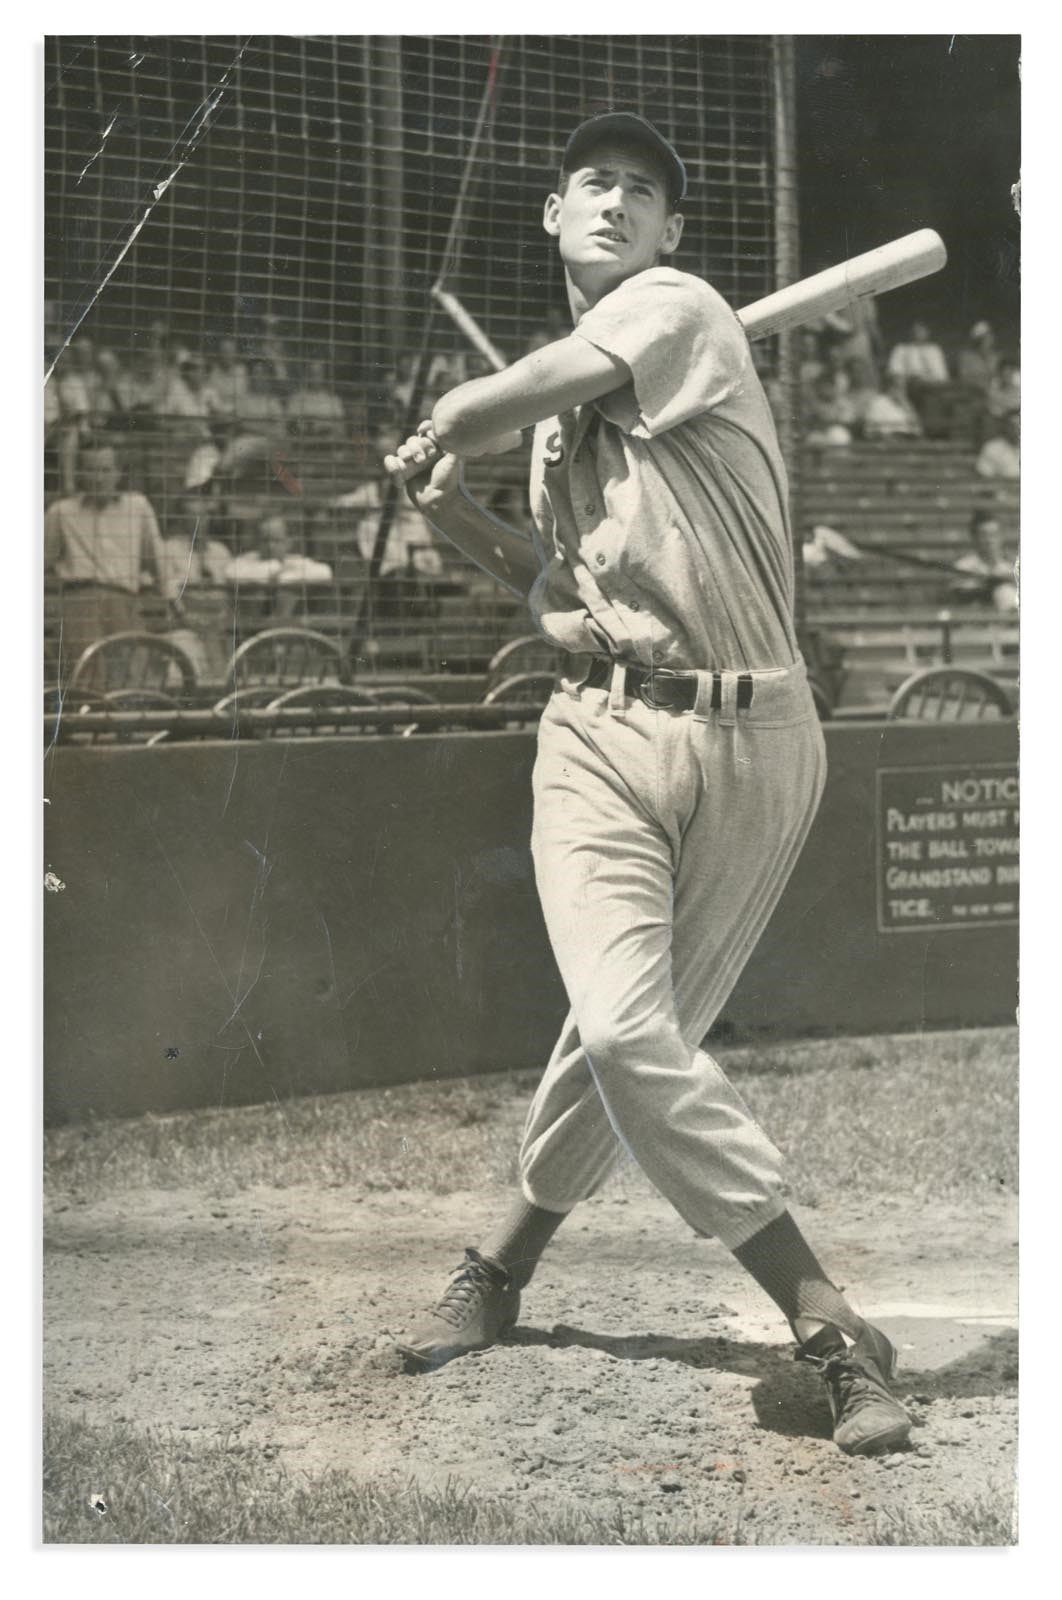 Vintage Sports Photographs - Monthly 07-18